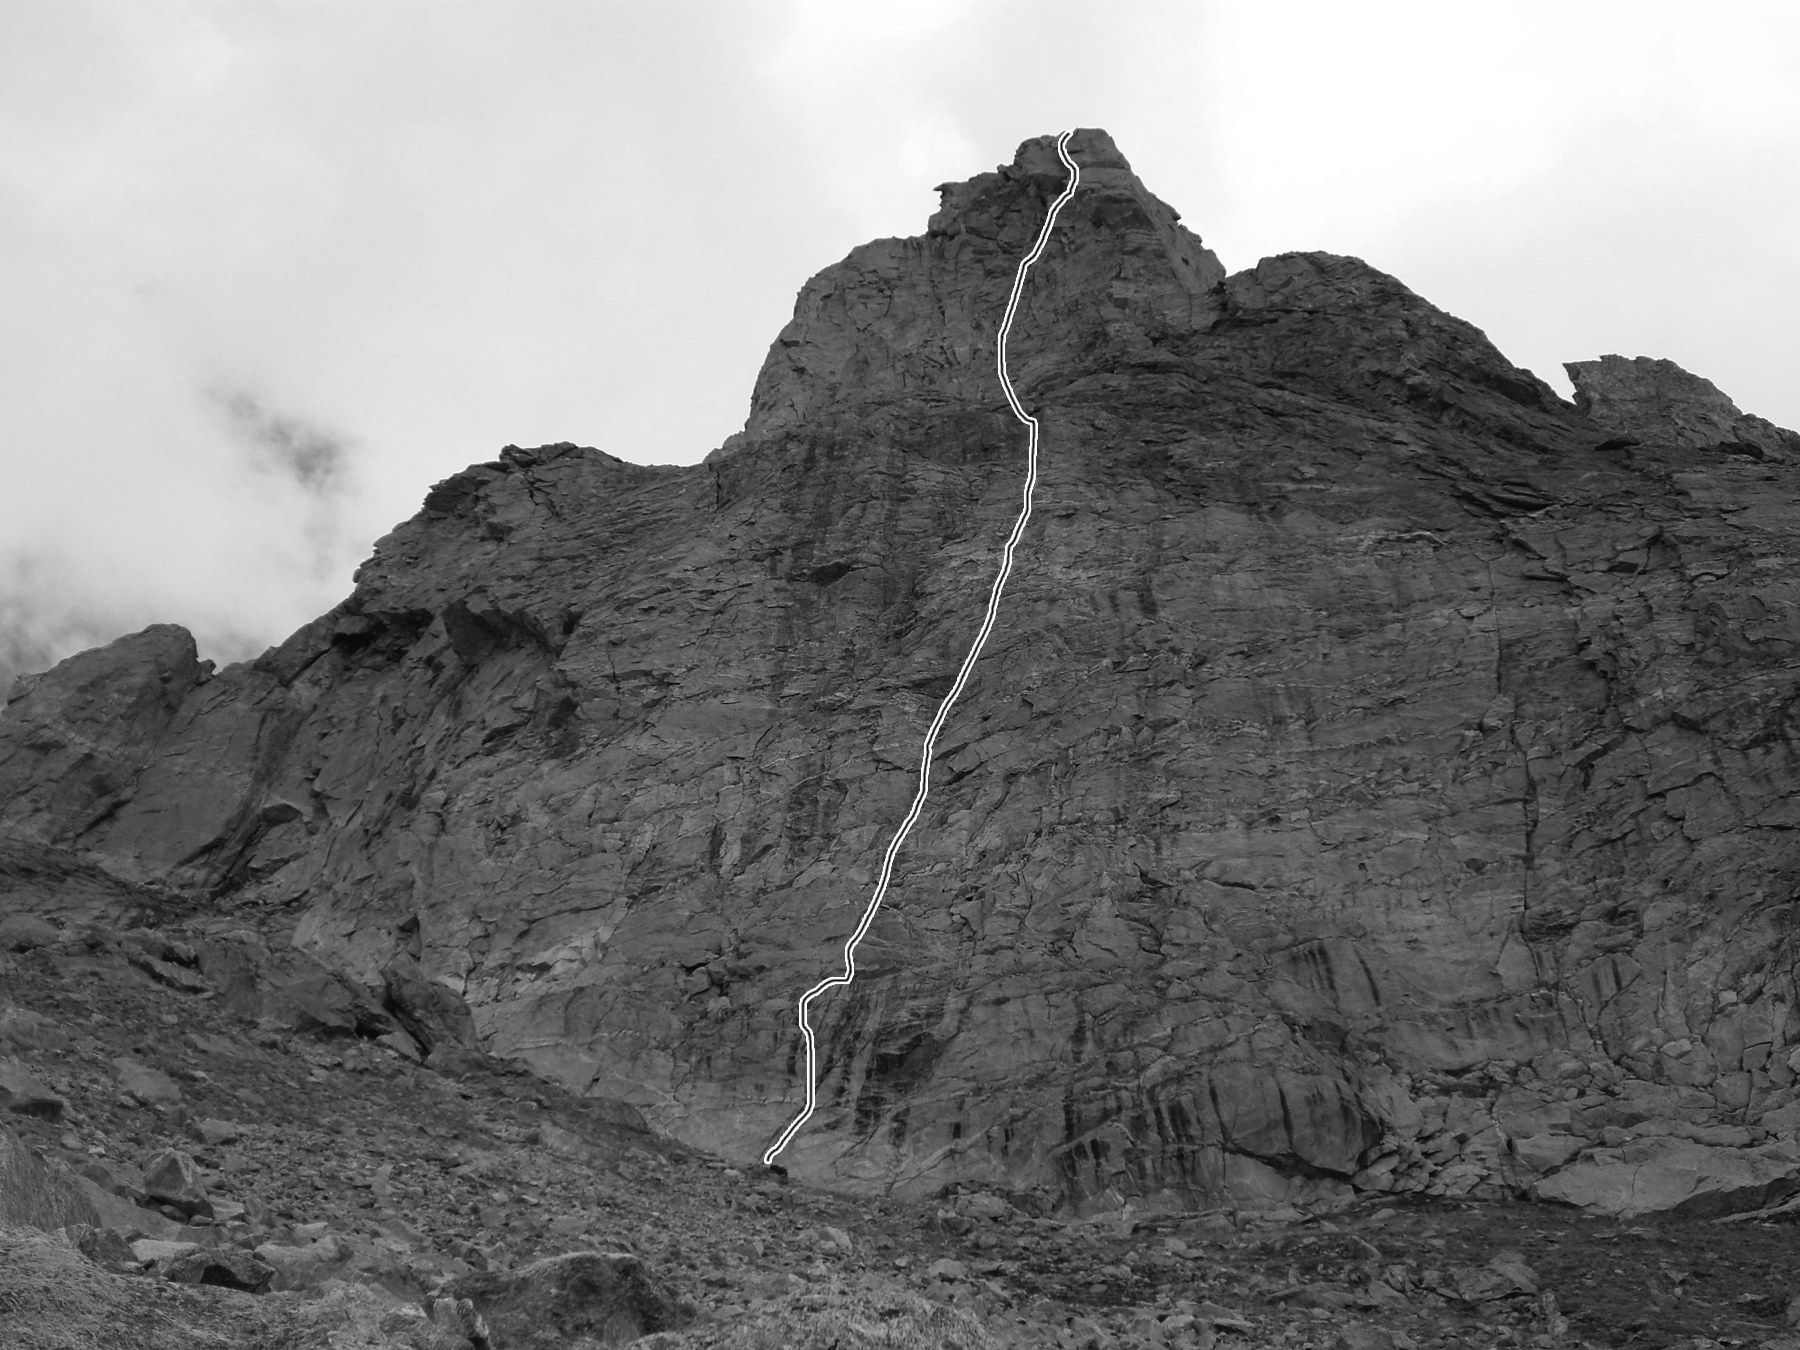 David's 62 Nose (ca 4,950m) on Castle Peak's south face, showing 350m-vertical Lufoo Lam–Windy Way. Andrej Grmovsek